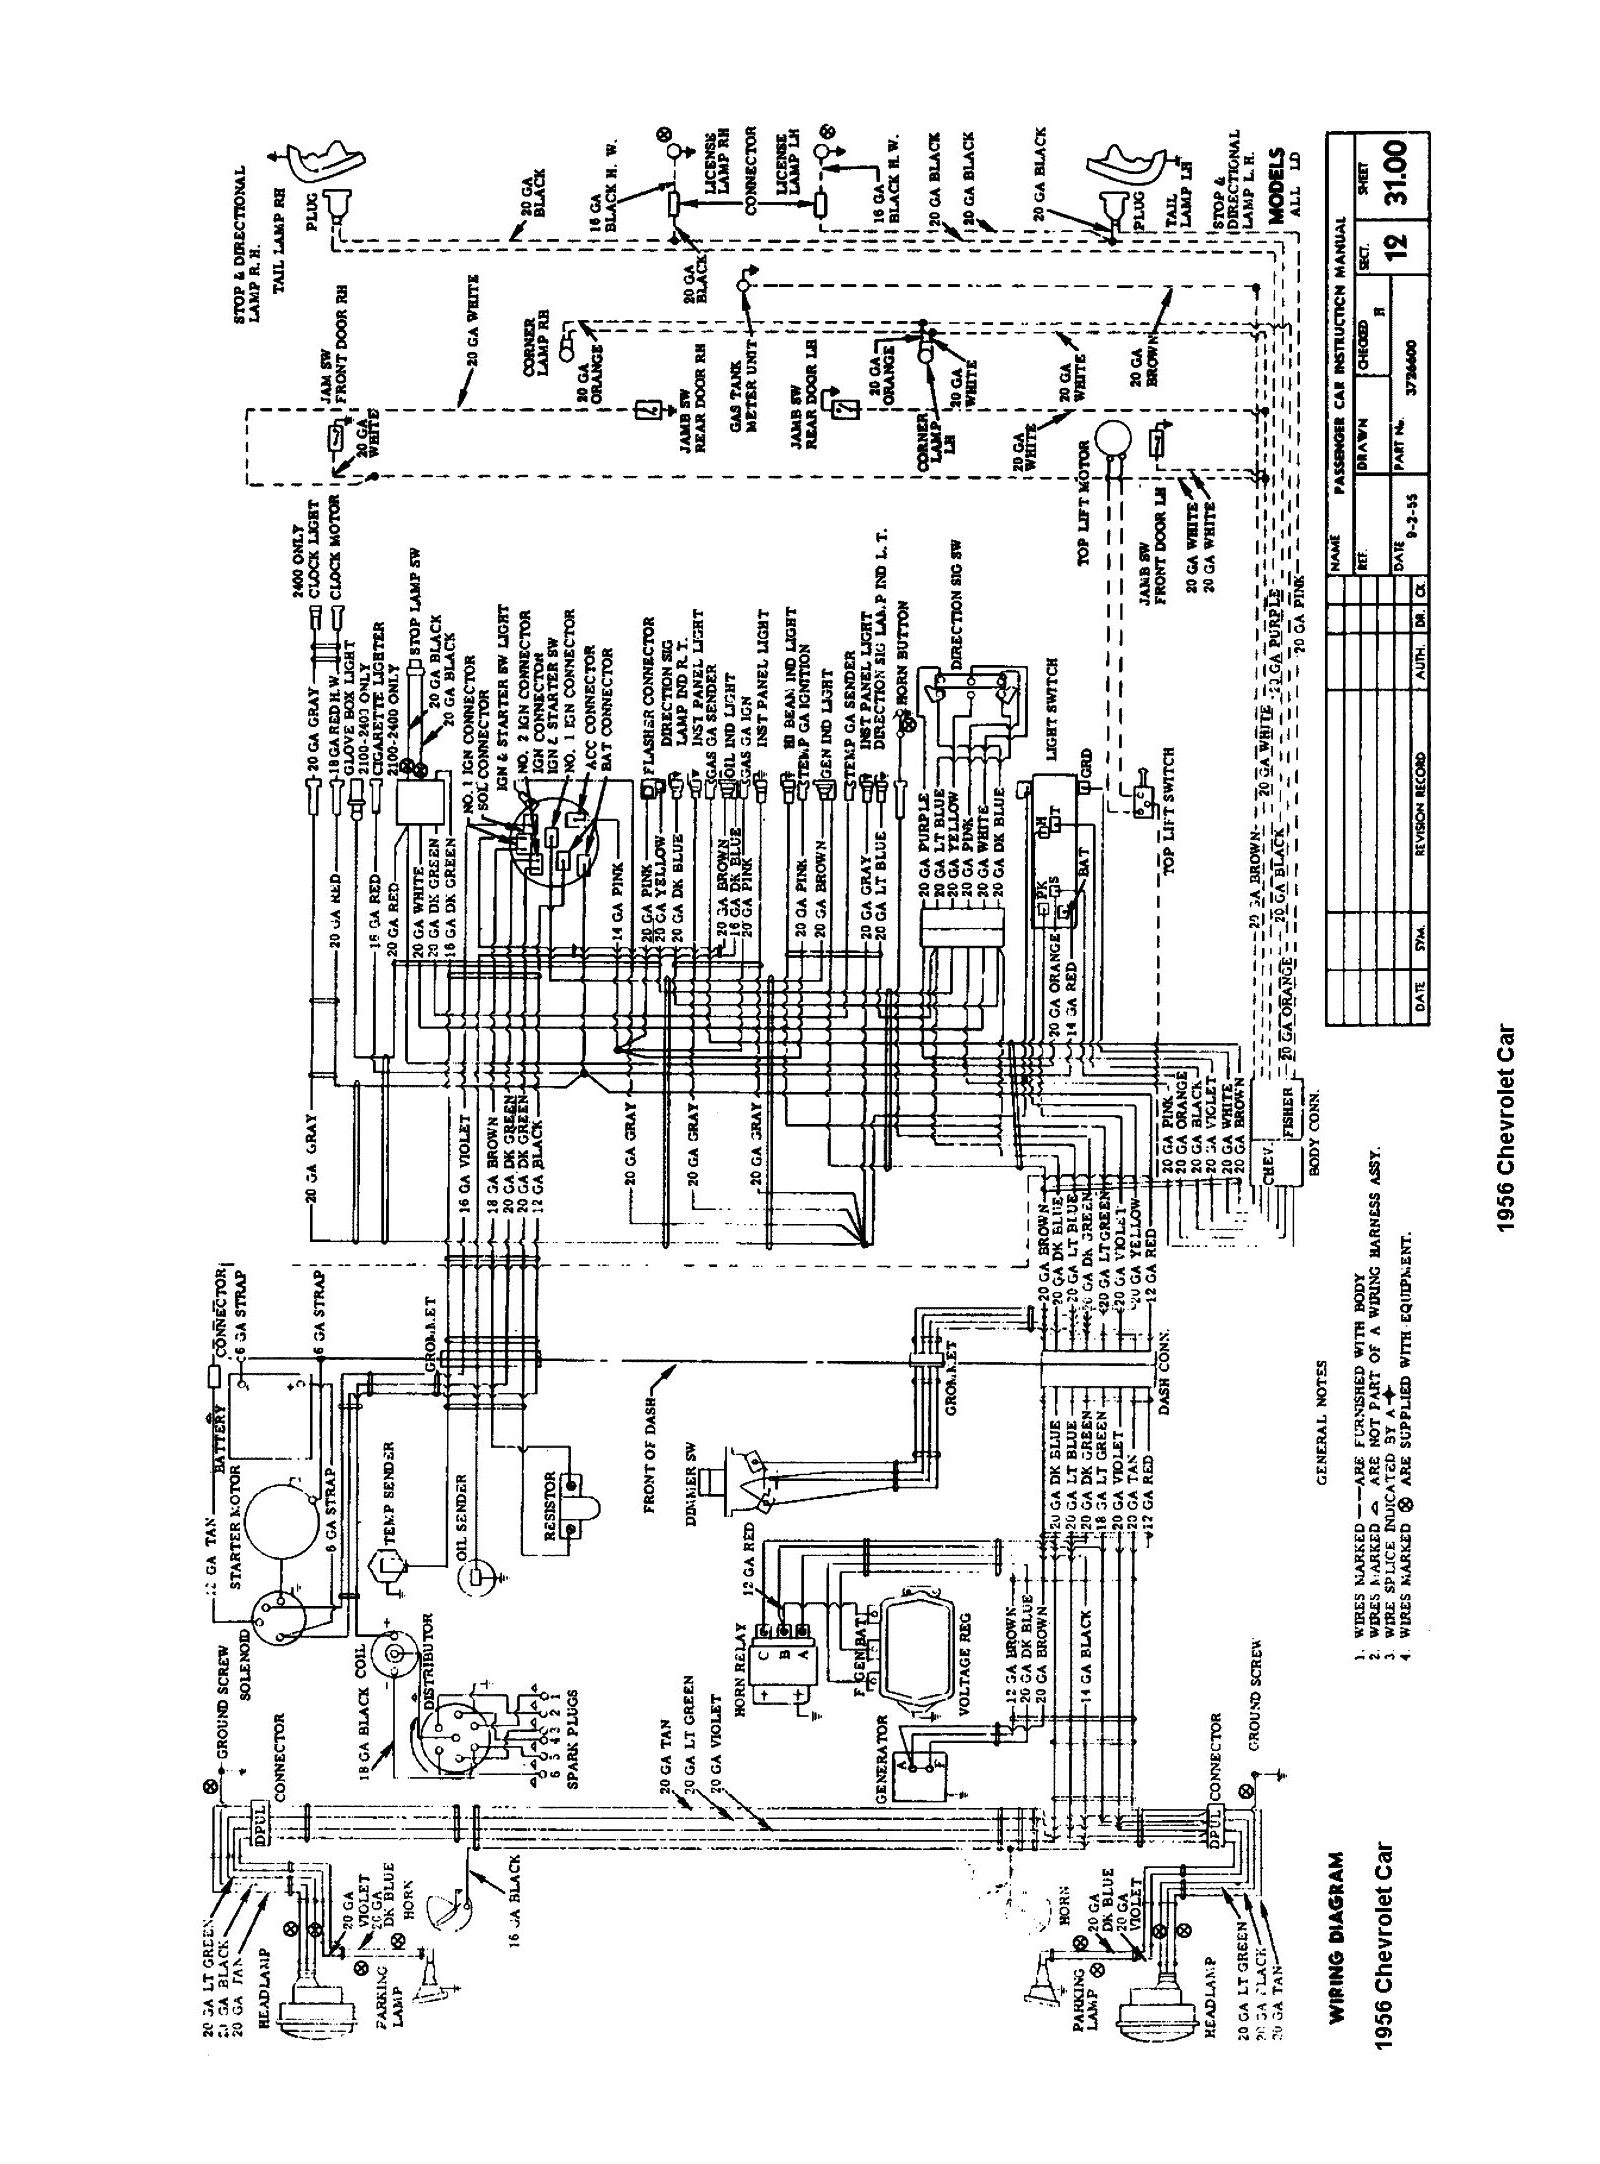 wiring diagram for 1956 cadillac with Wiring on Sequencer moreover Lennox Gcs16 Wiring Diagram together with Wiring furthermore Tips together with Showthread.